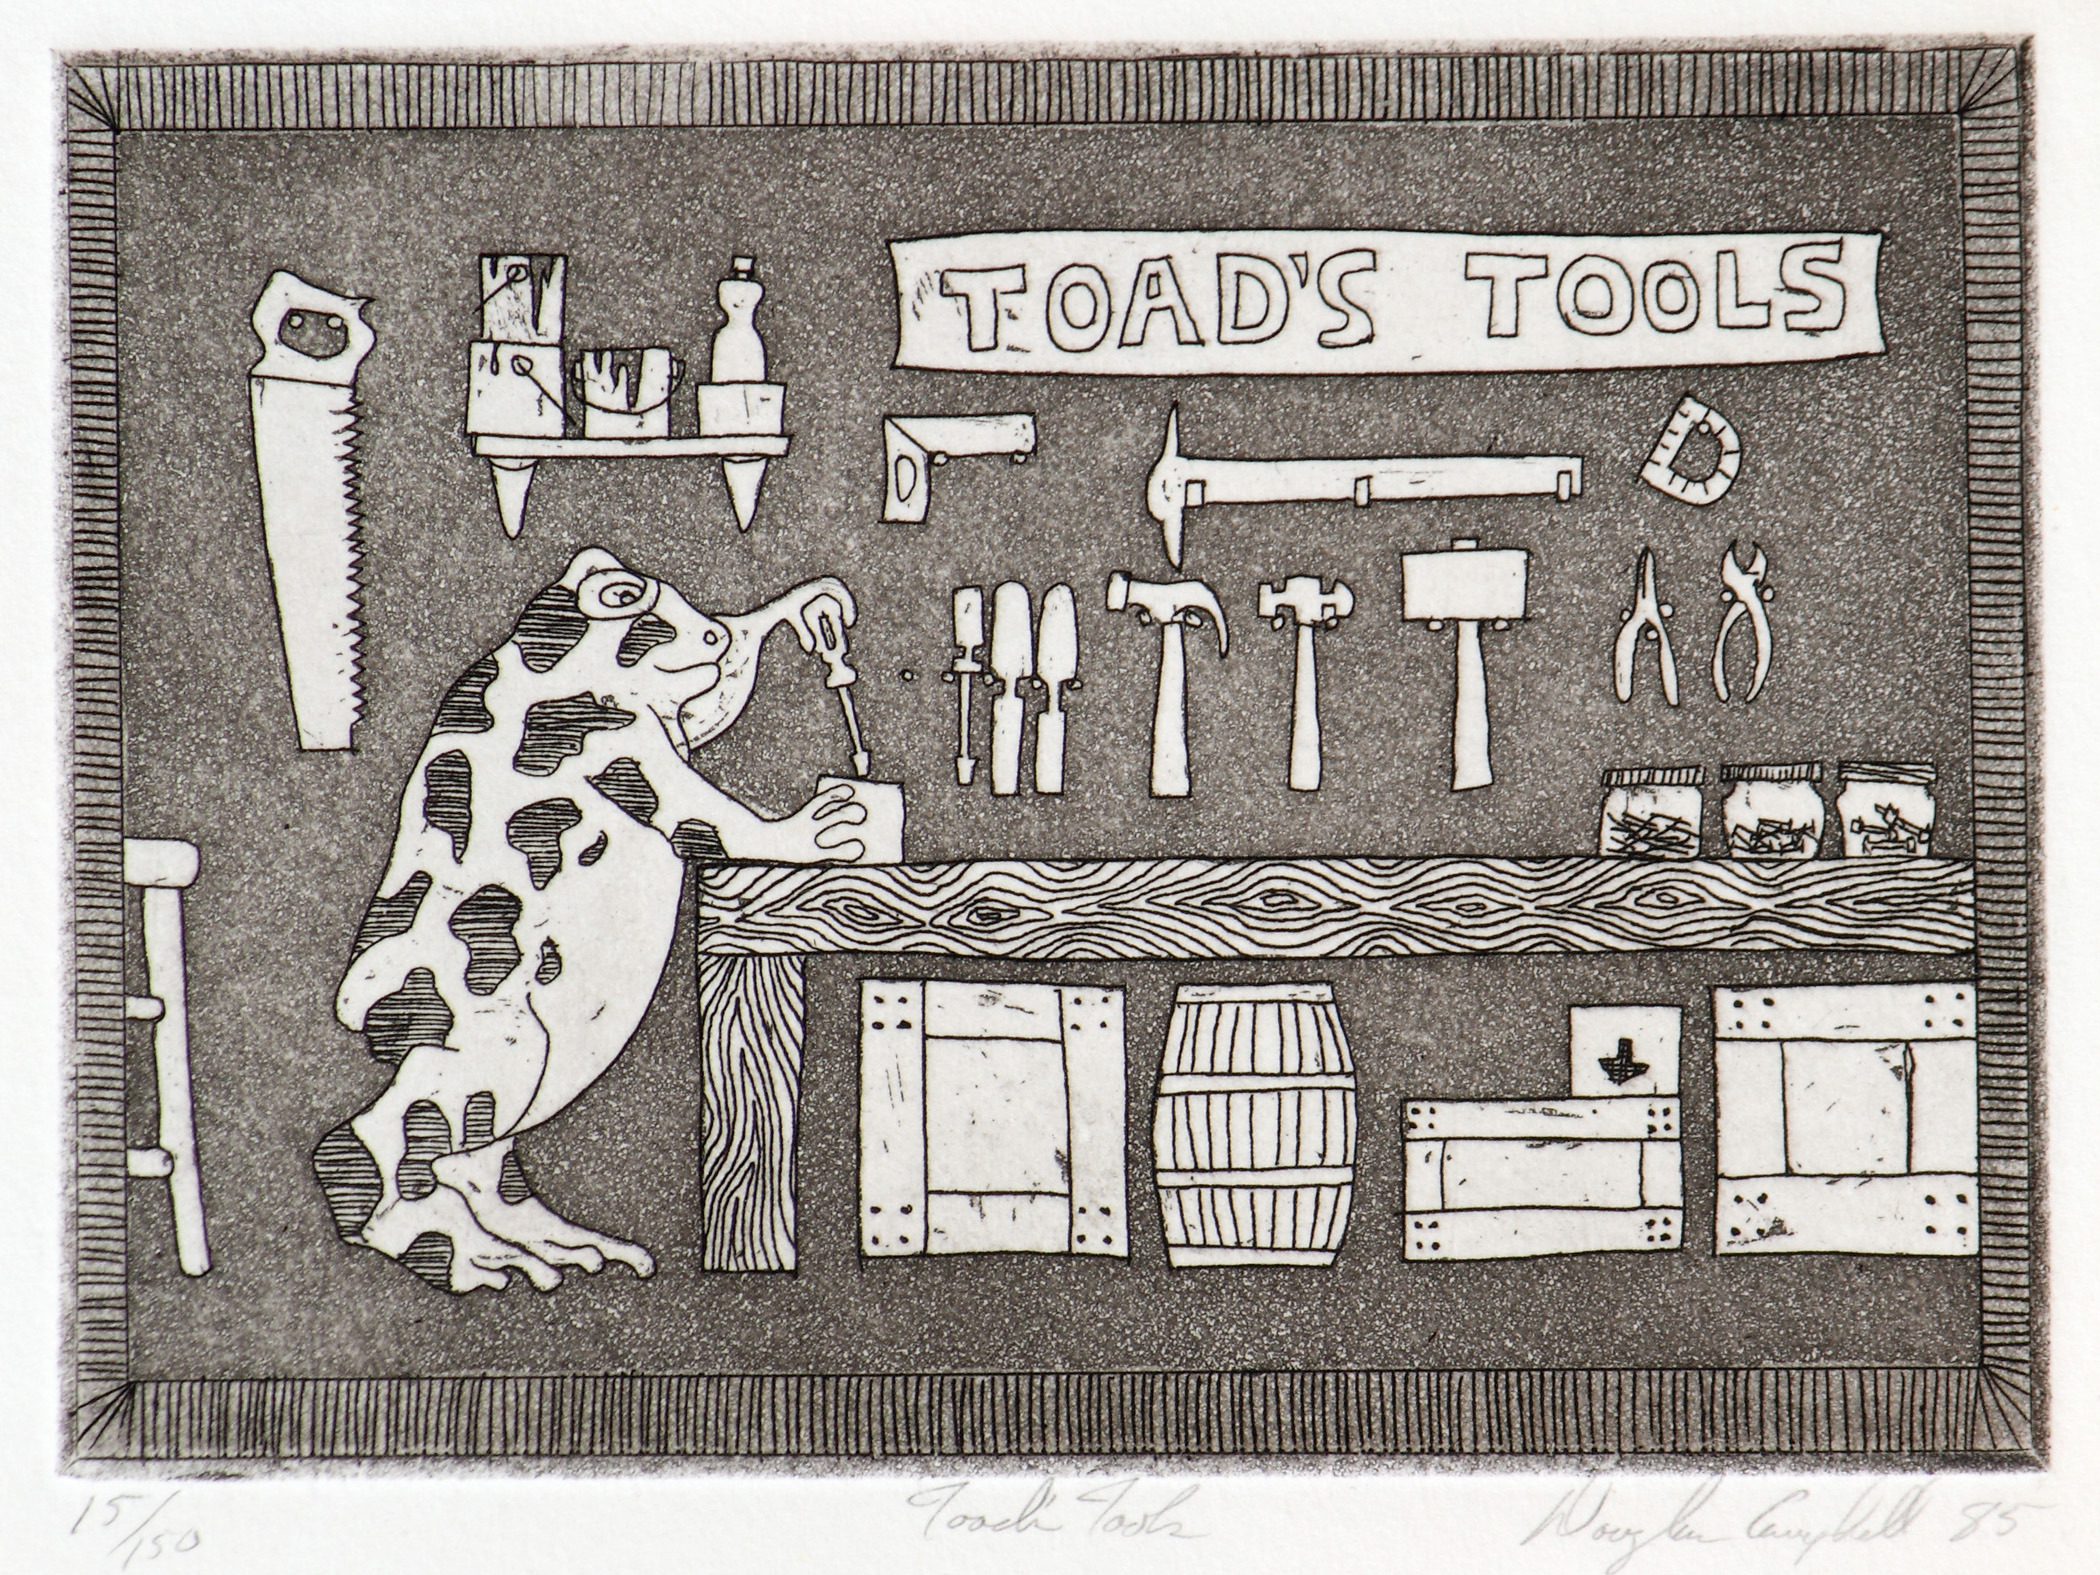 Toad's Tools